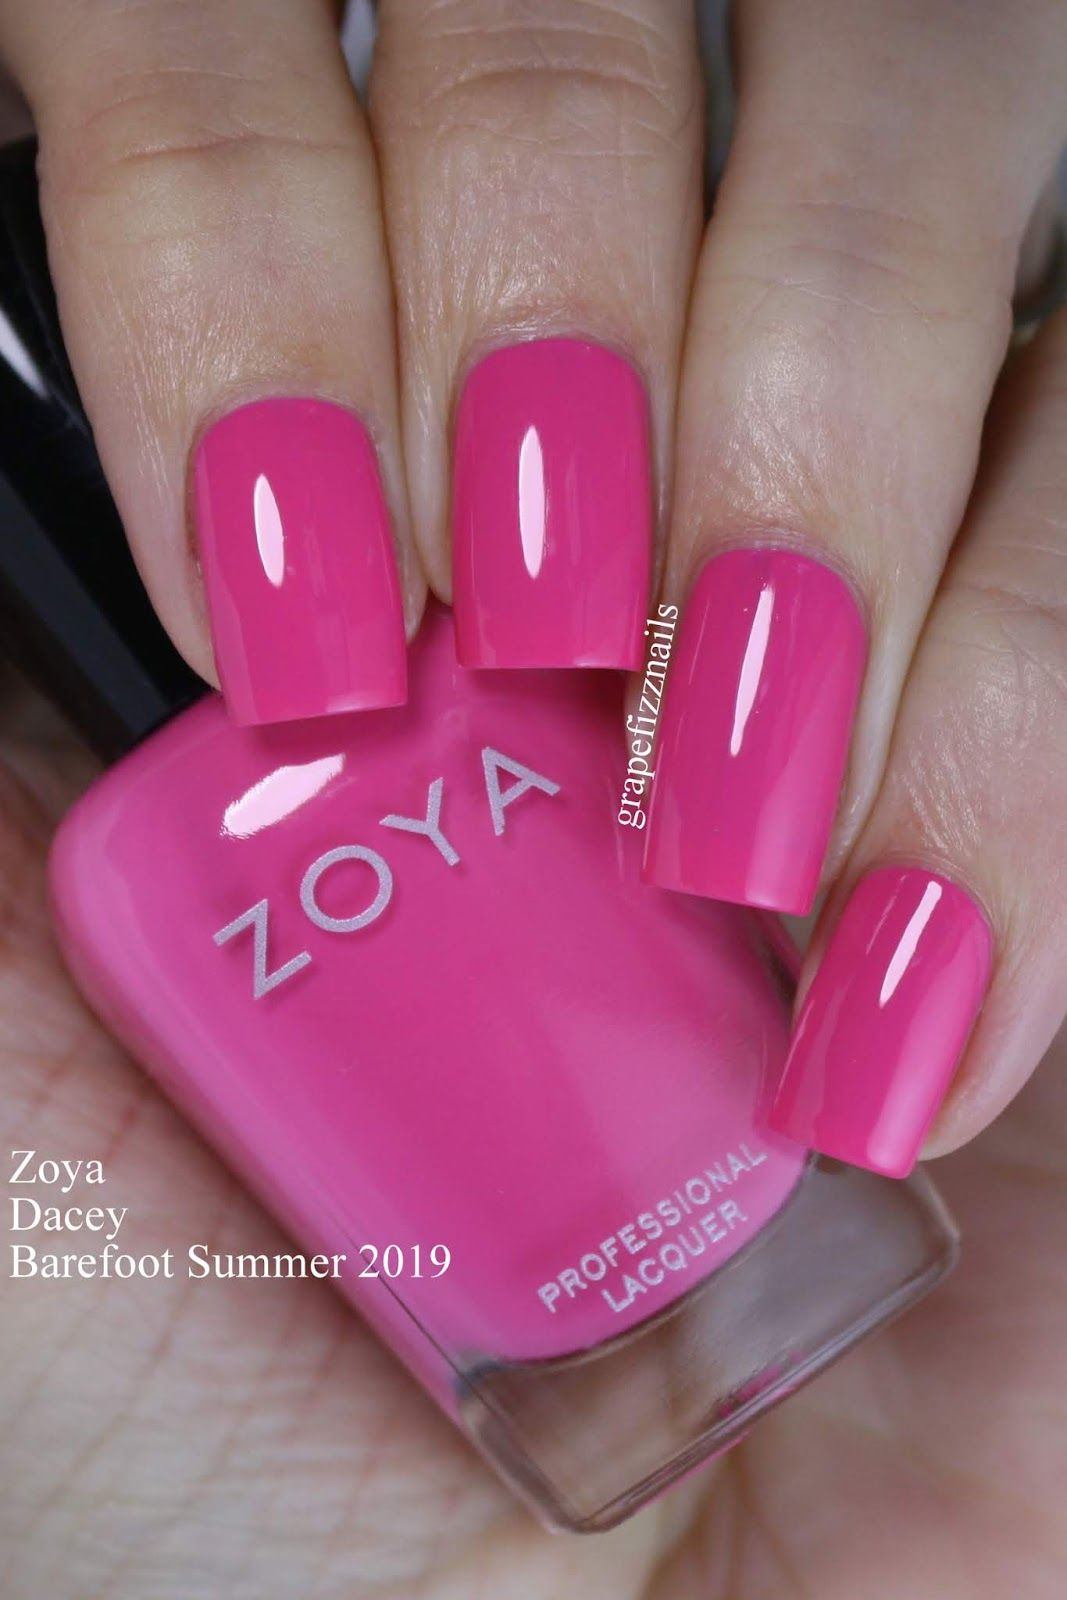 Zoya Barefoot Summer 2019 With Images Nails Natural Gel Nails